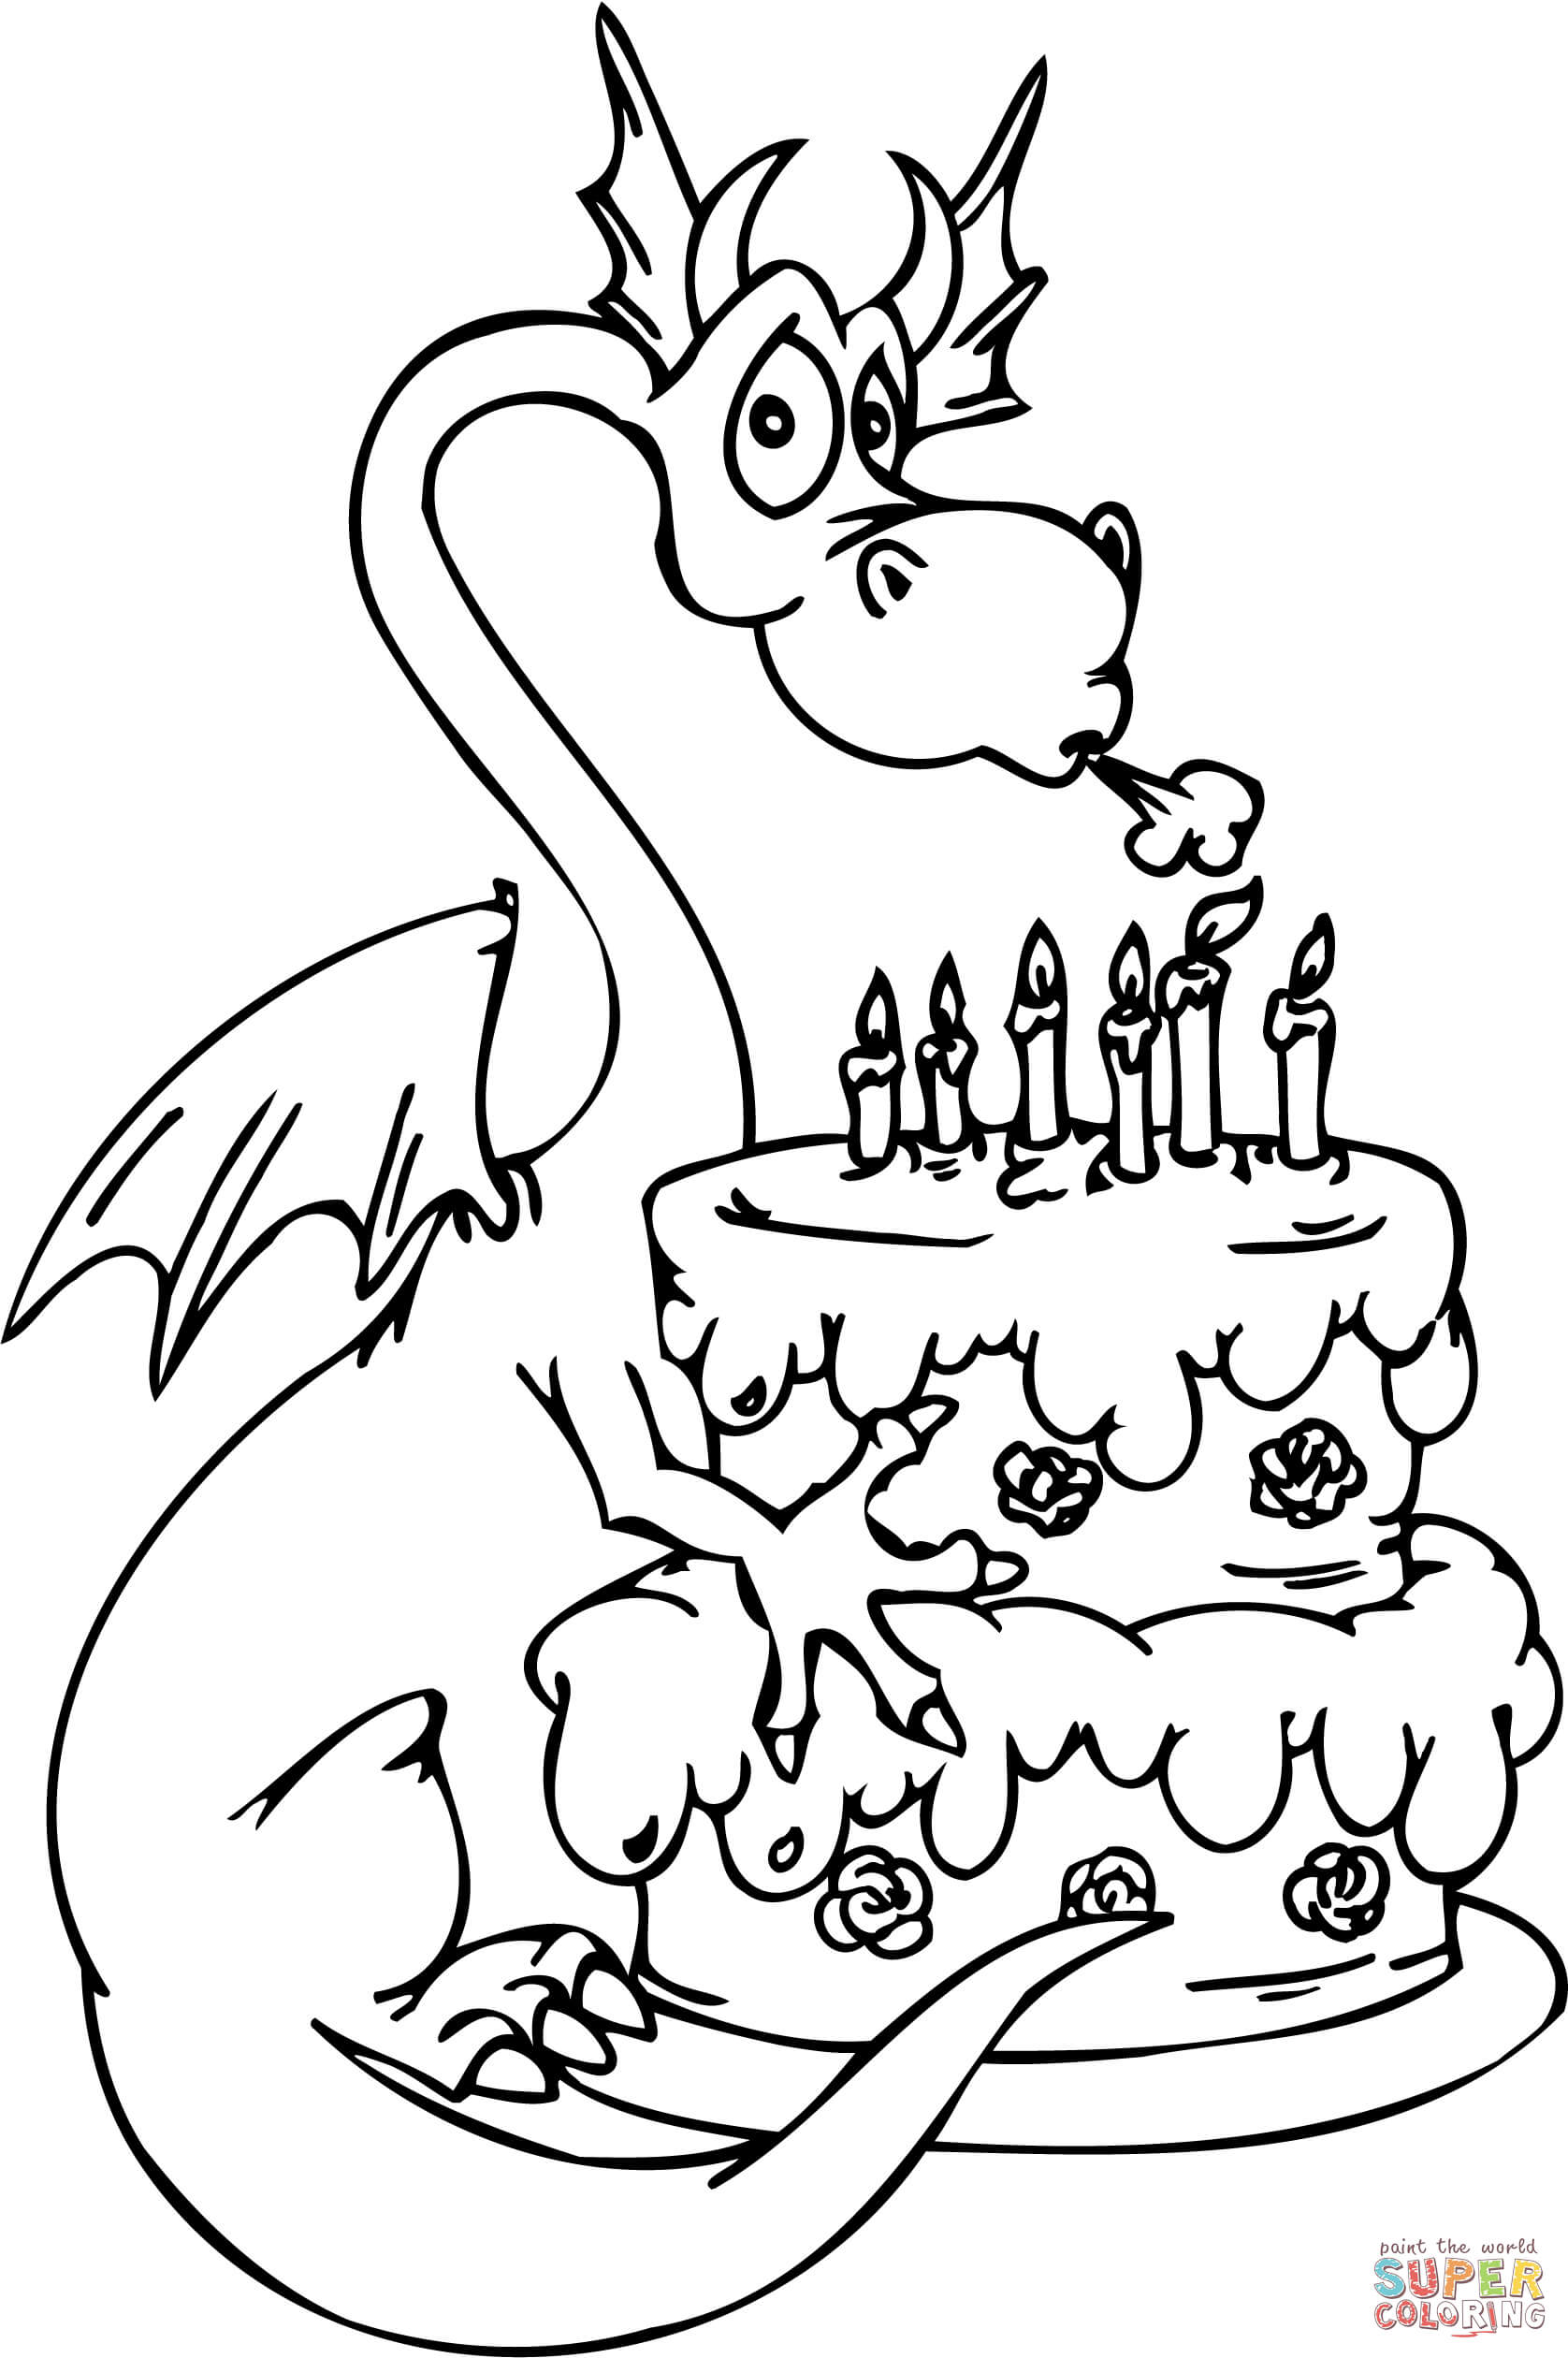 dinosaur happy birthday coloring pages dinosaur drawing book for kids in 2020 happy birthday pages dinosaur birthday happy coloring